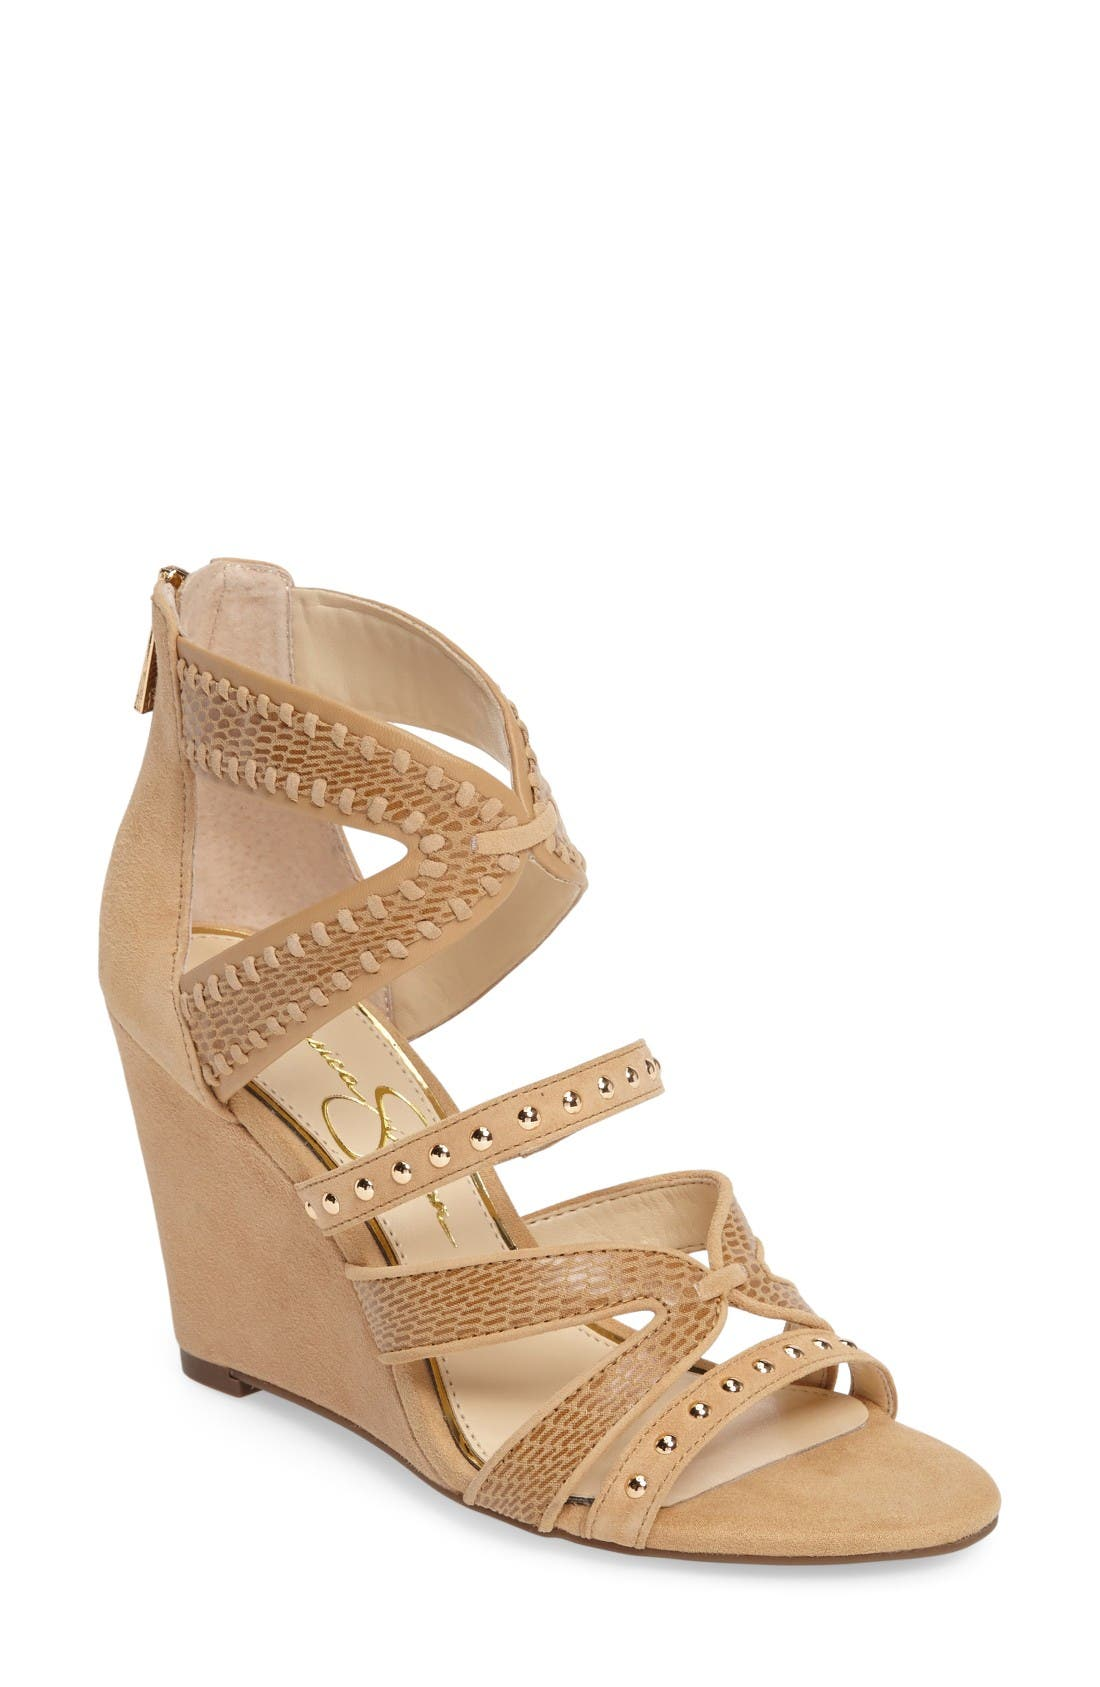 JESSICA SIMPSON Zenolia Strappy Embellished Wedge